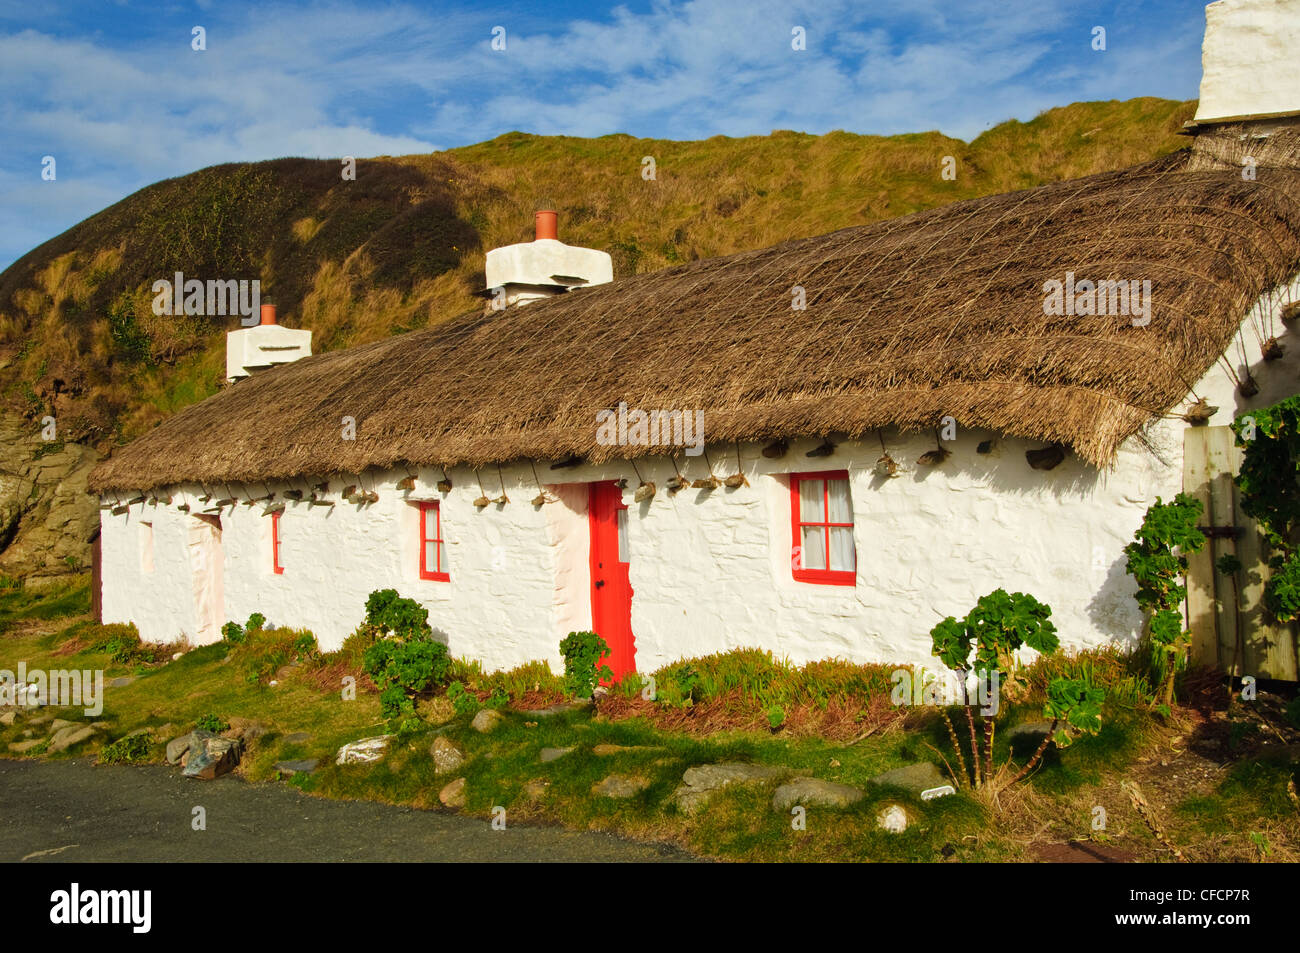 """Ned's Cottage"" featured in the film ""Waking Ned"" at Niarbyl Bay Isle of Man - Stock Image"